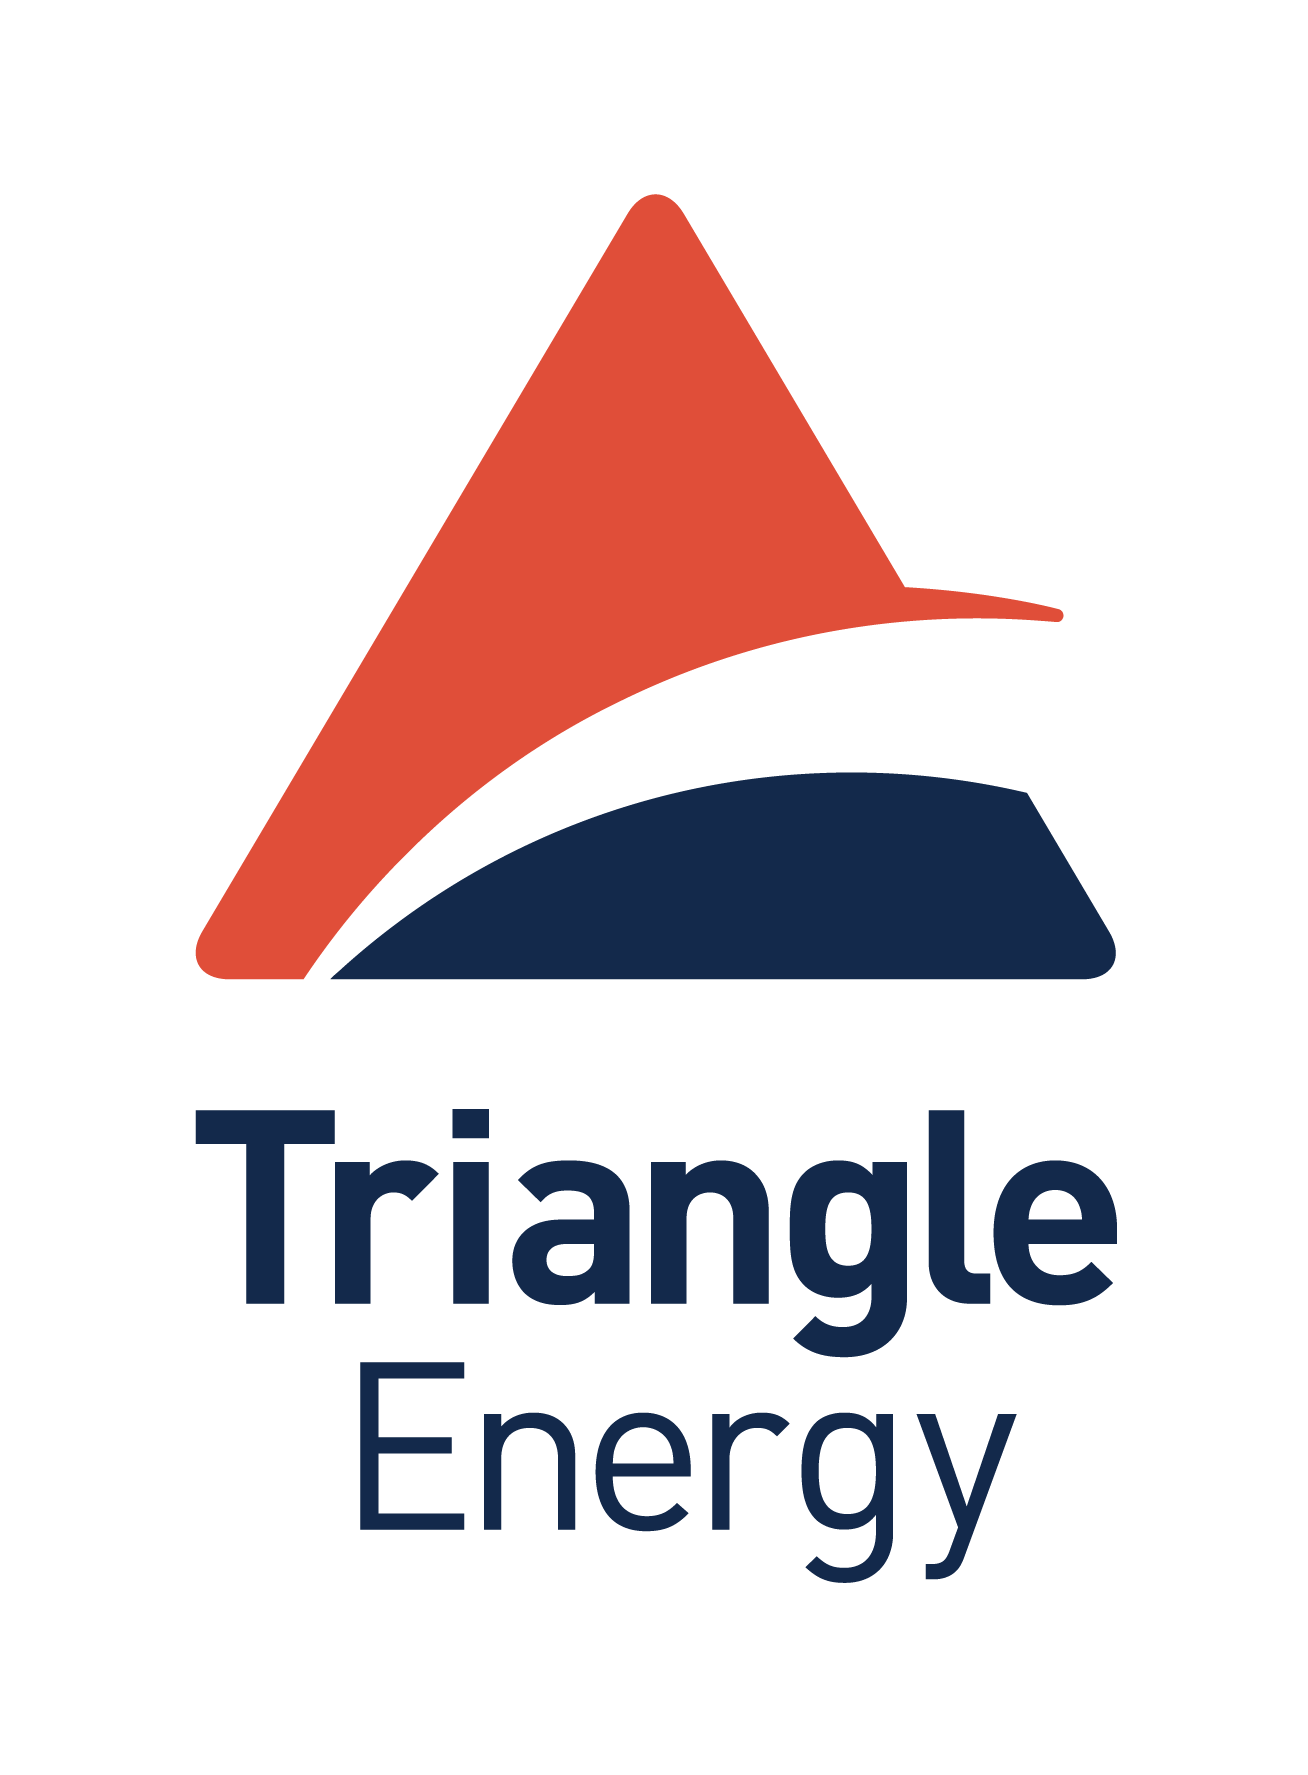 Triangle Energy Global